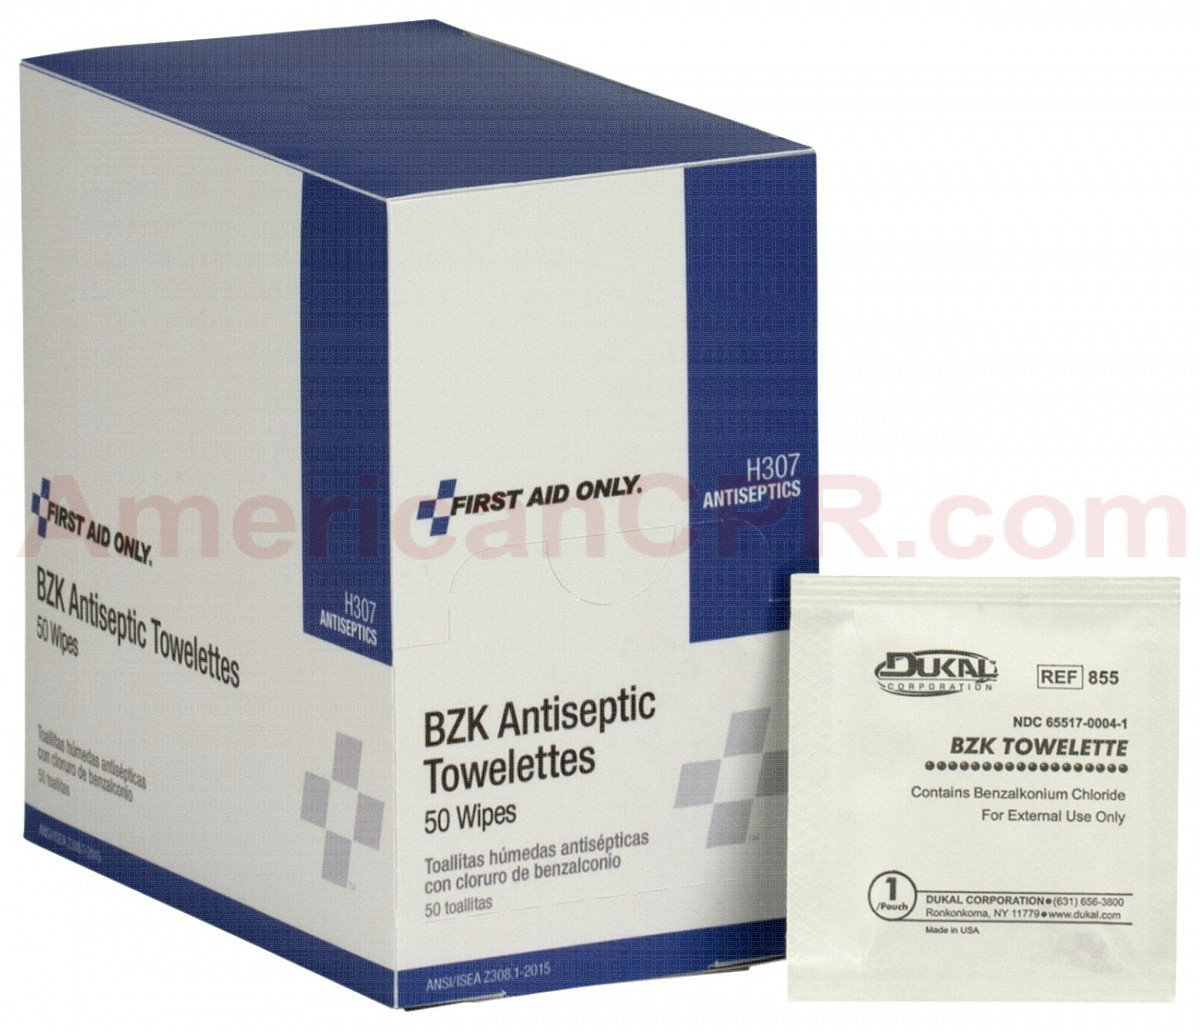 Antiseptic pads saturated with 0.133% Benzalkonium Chloride to help prevent infection in minor cuts, burns and scrapes